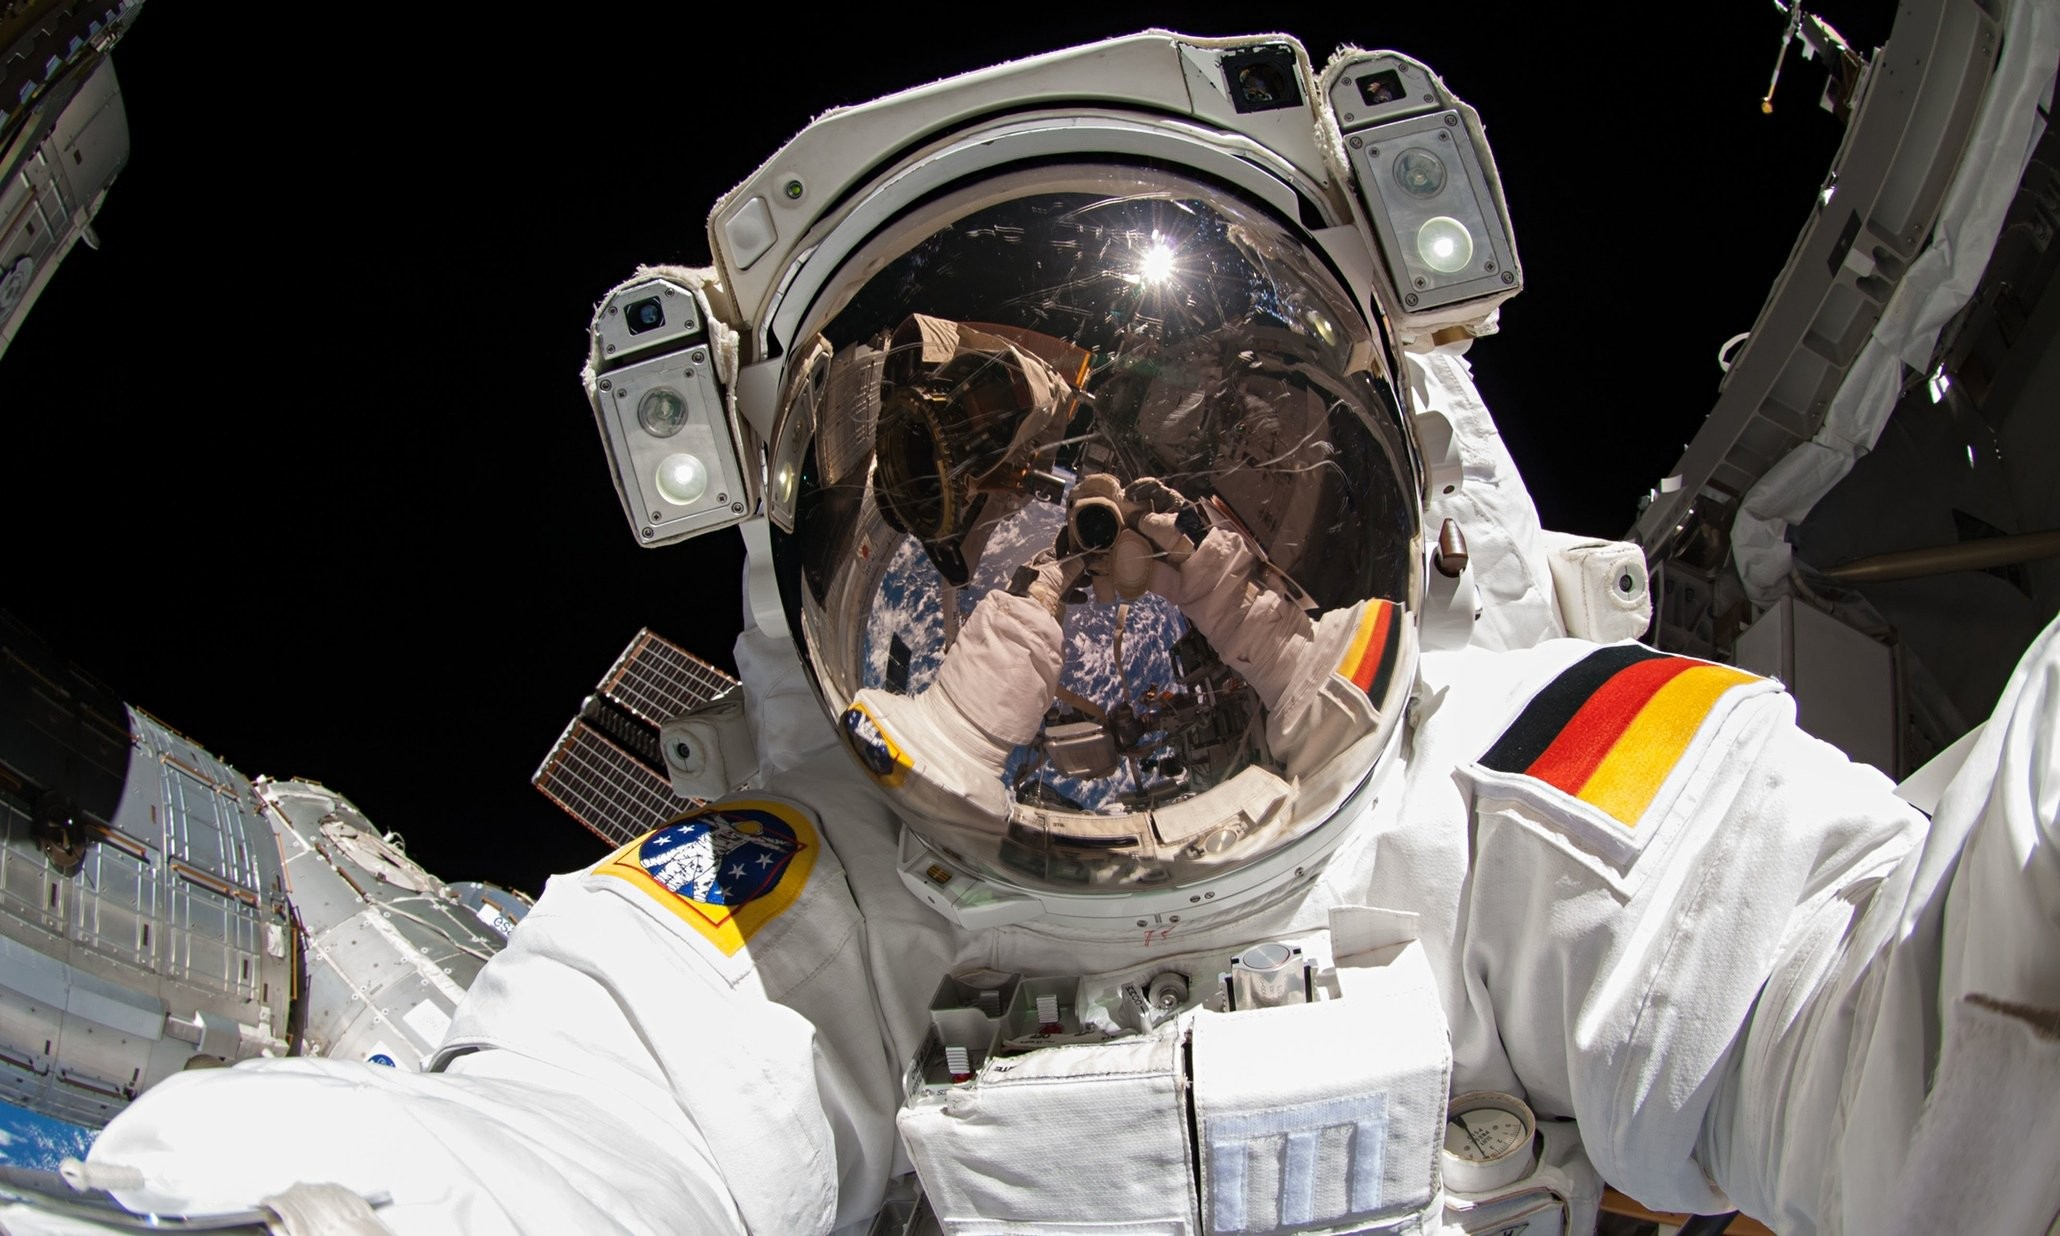 General 2060x1236 space universe space station orbits Orbital Stations space suit German flag helmet self shot camera reflection Earth selfies astronaut International Space Station Alexander Gerst